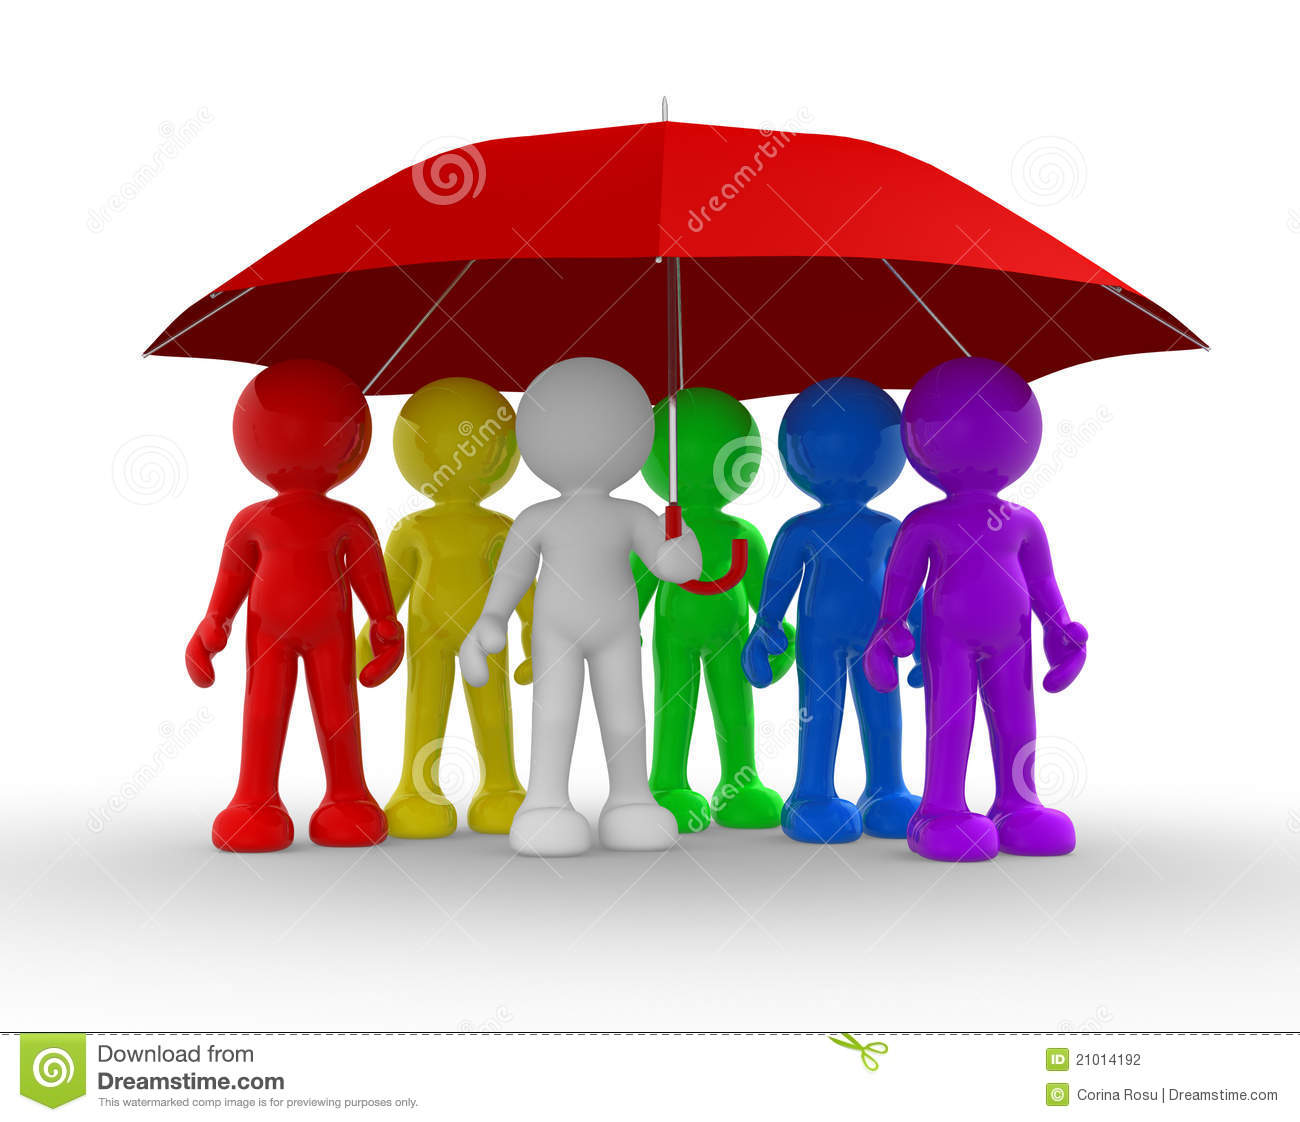 Group of people under the umbrella - This is a 3d render illustration.